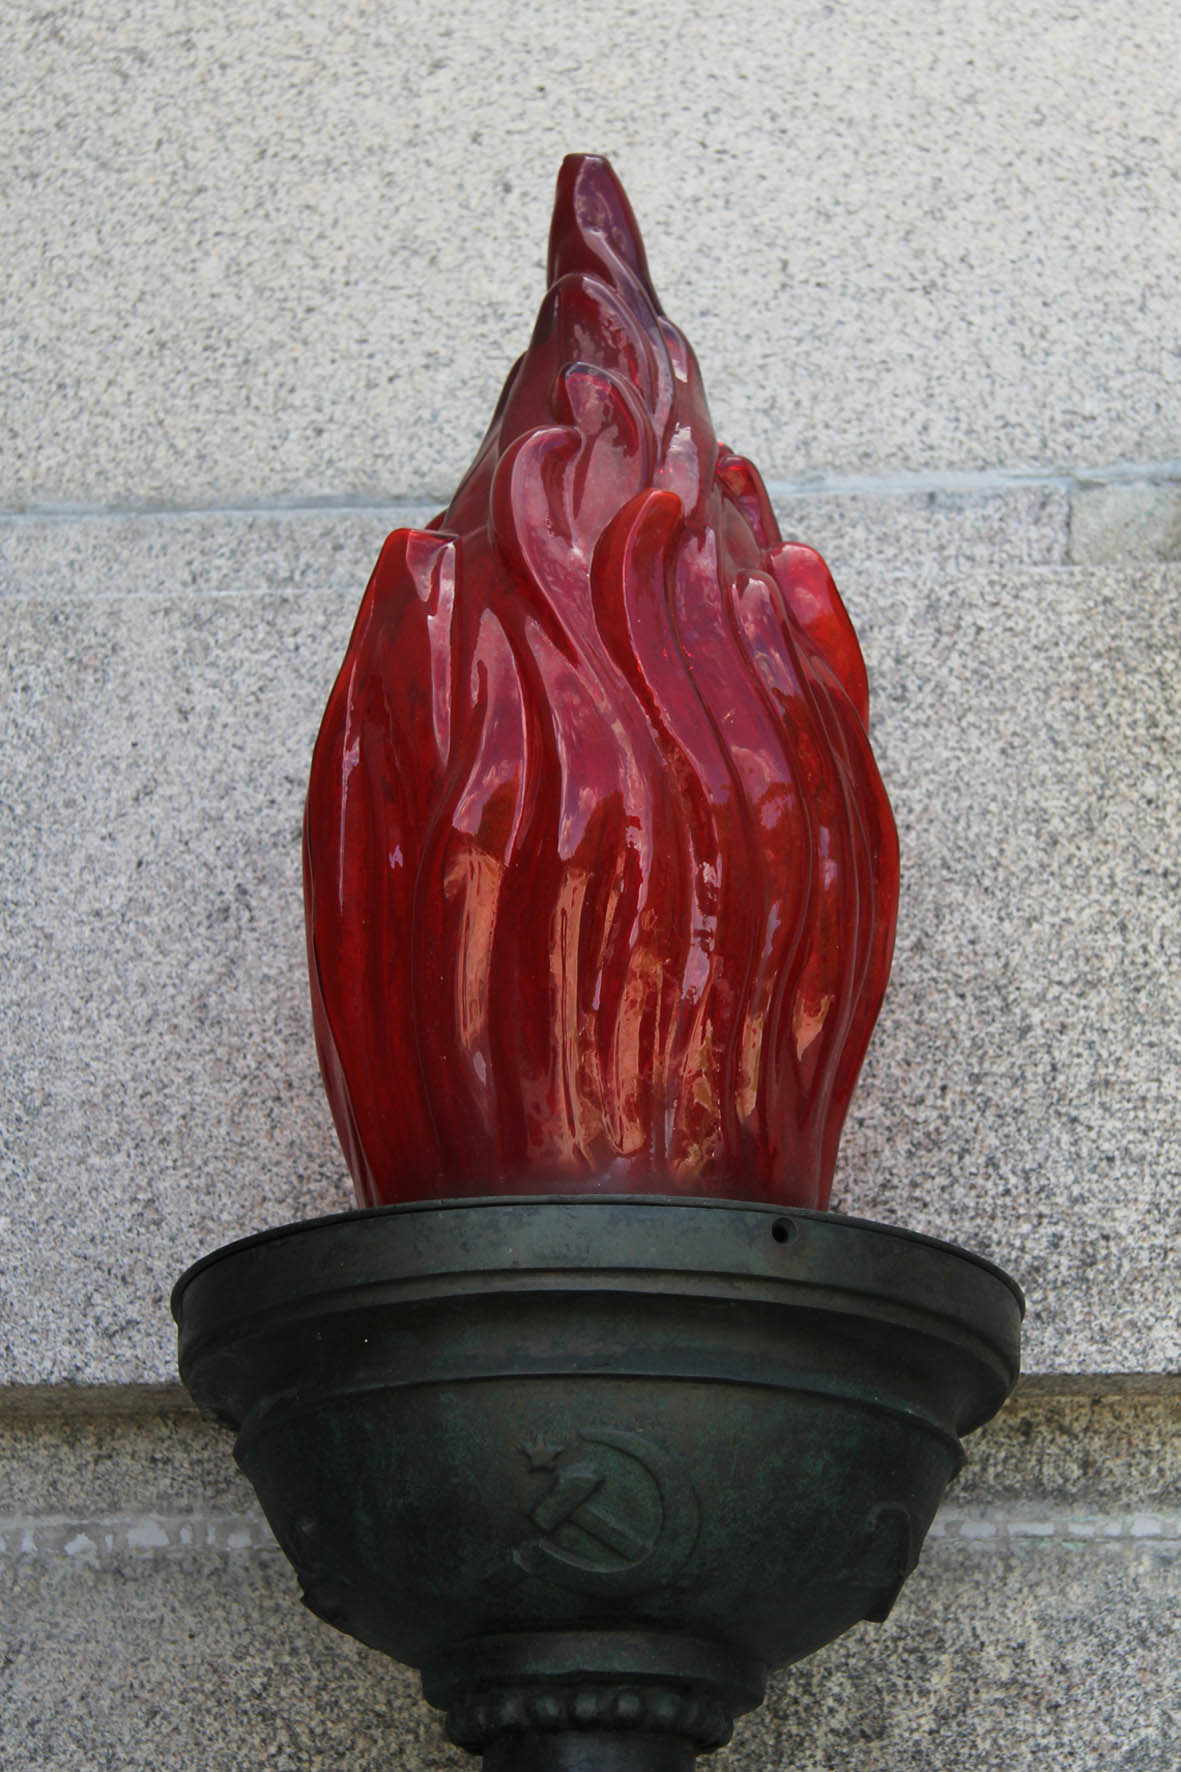 Eternal Flame at Soviet Memorial in Schönholzer Heide in Berlin